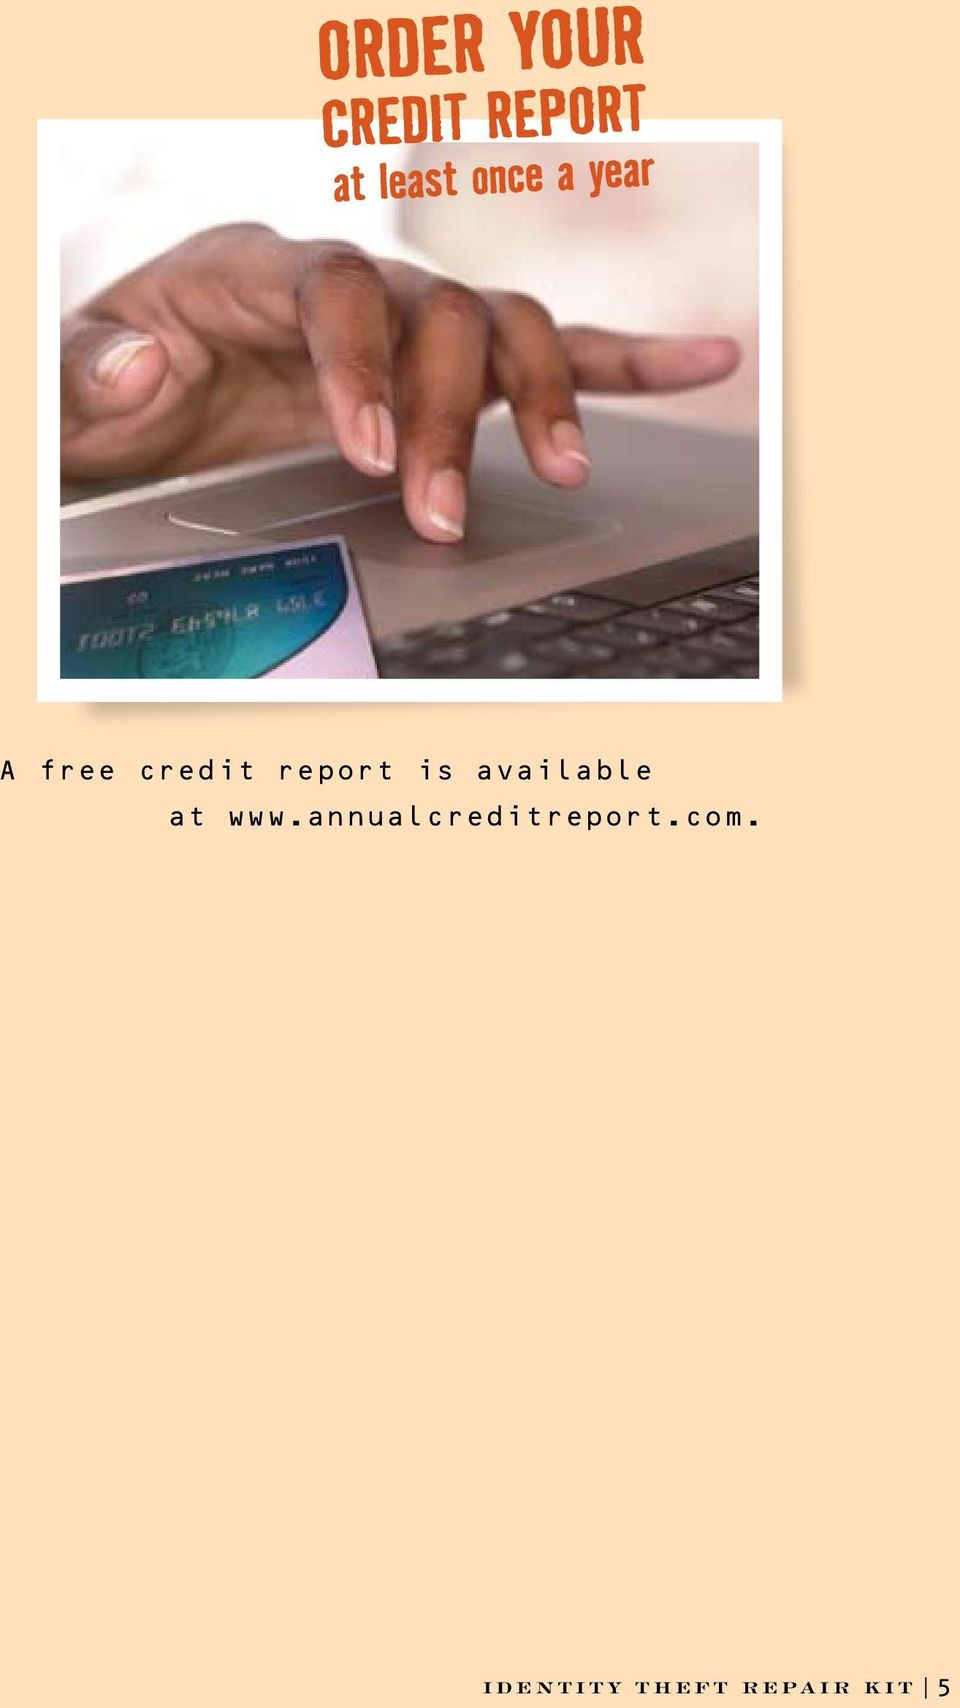 annualcreditreport.com.